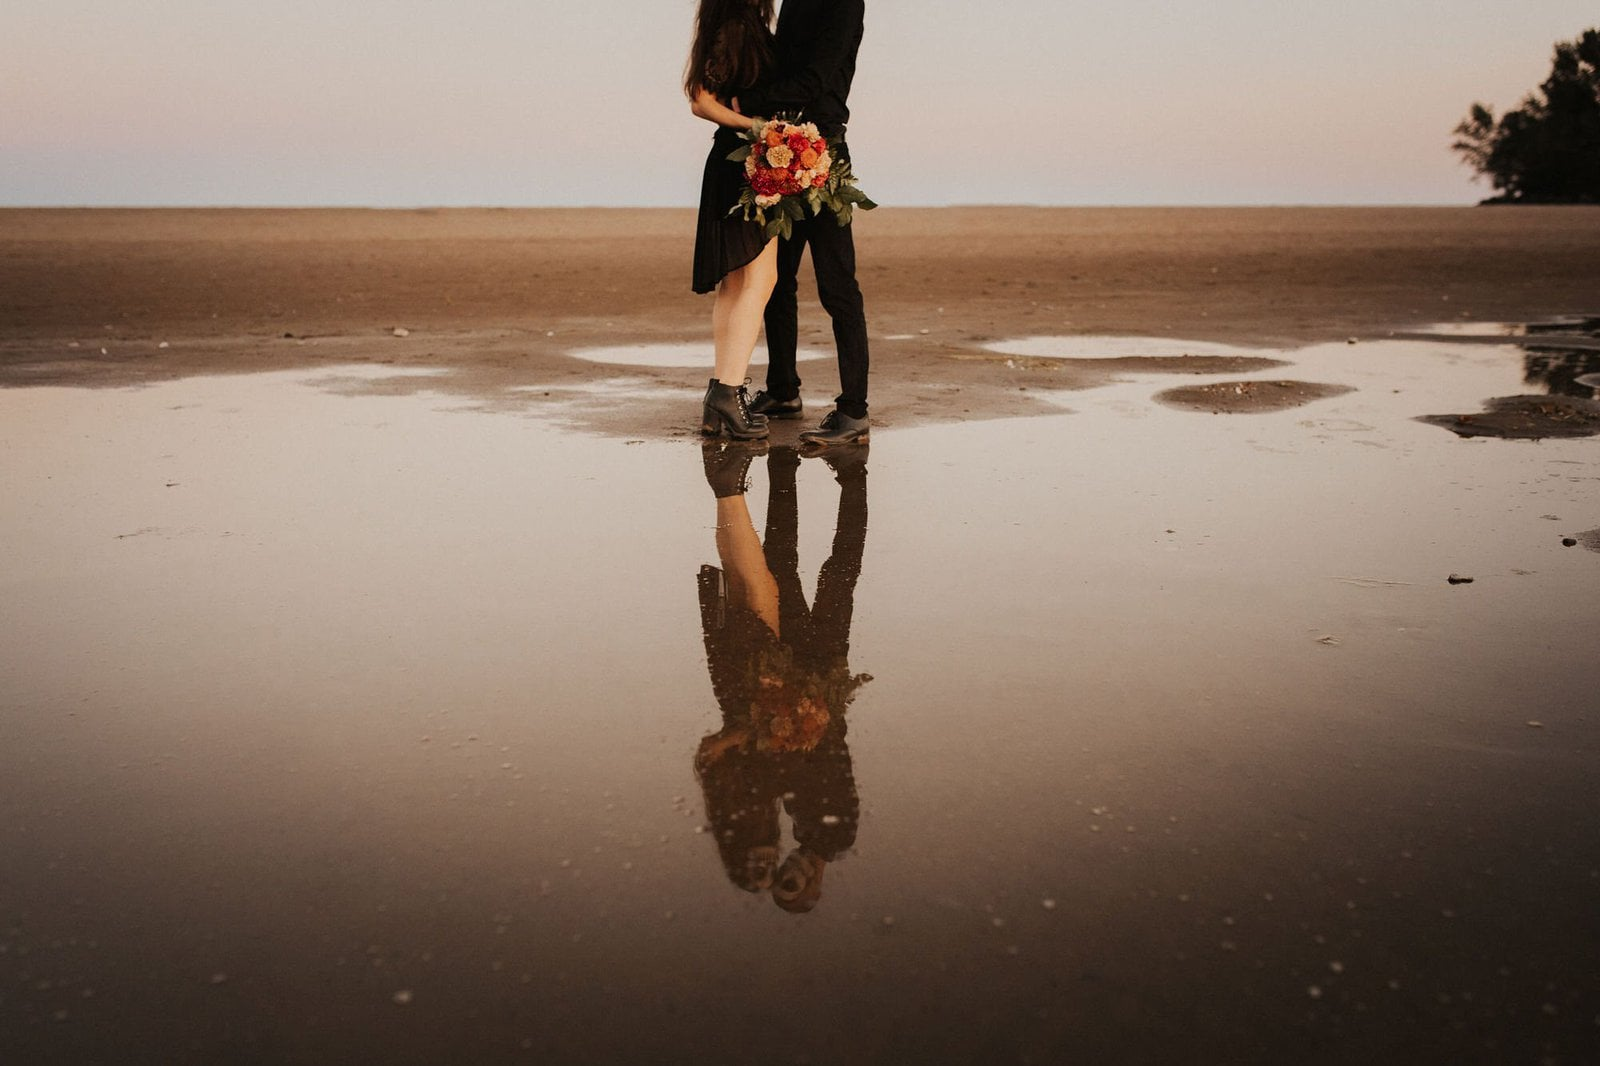 reflection shot of couple on beach.